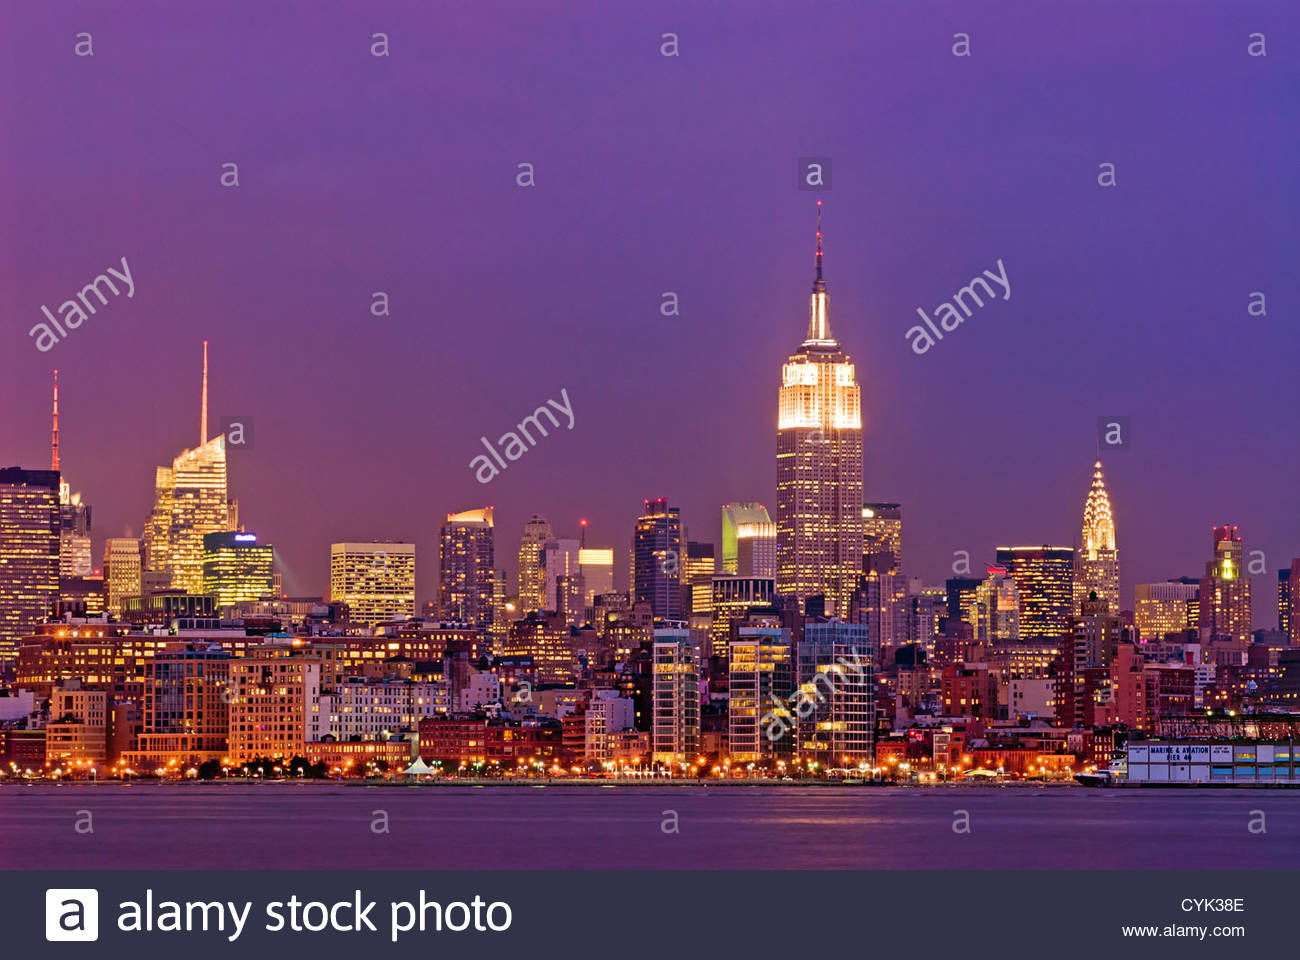 Manhattan Skyline with the Bank of America Building, Empire State Building and the Chrysler Building, New York City. Stock Photo